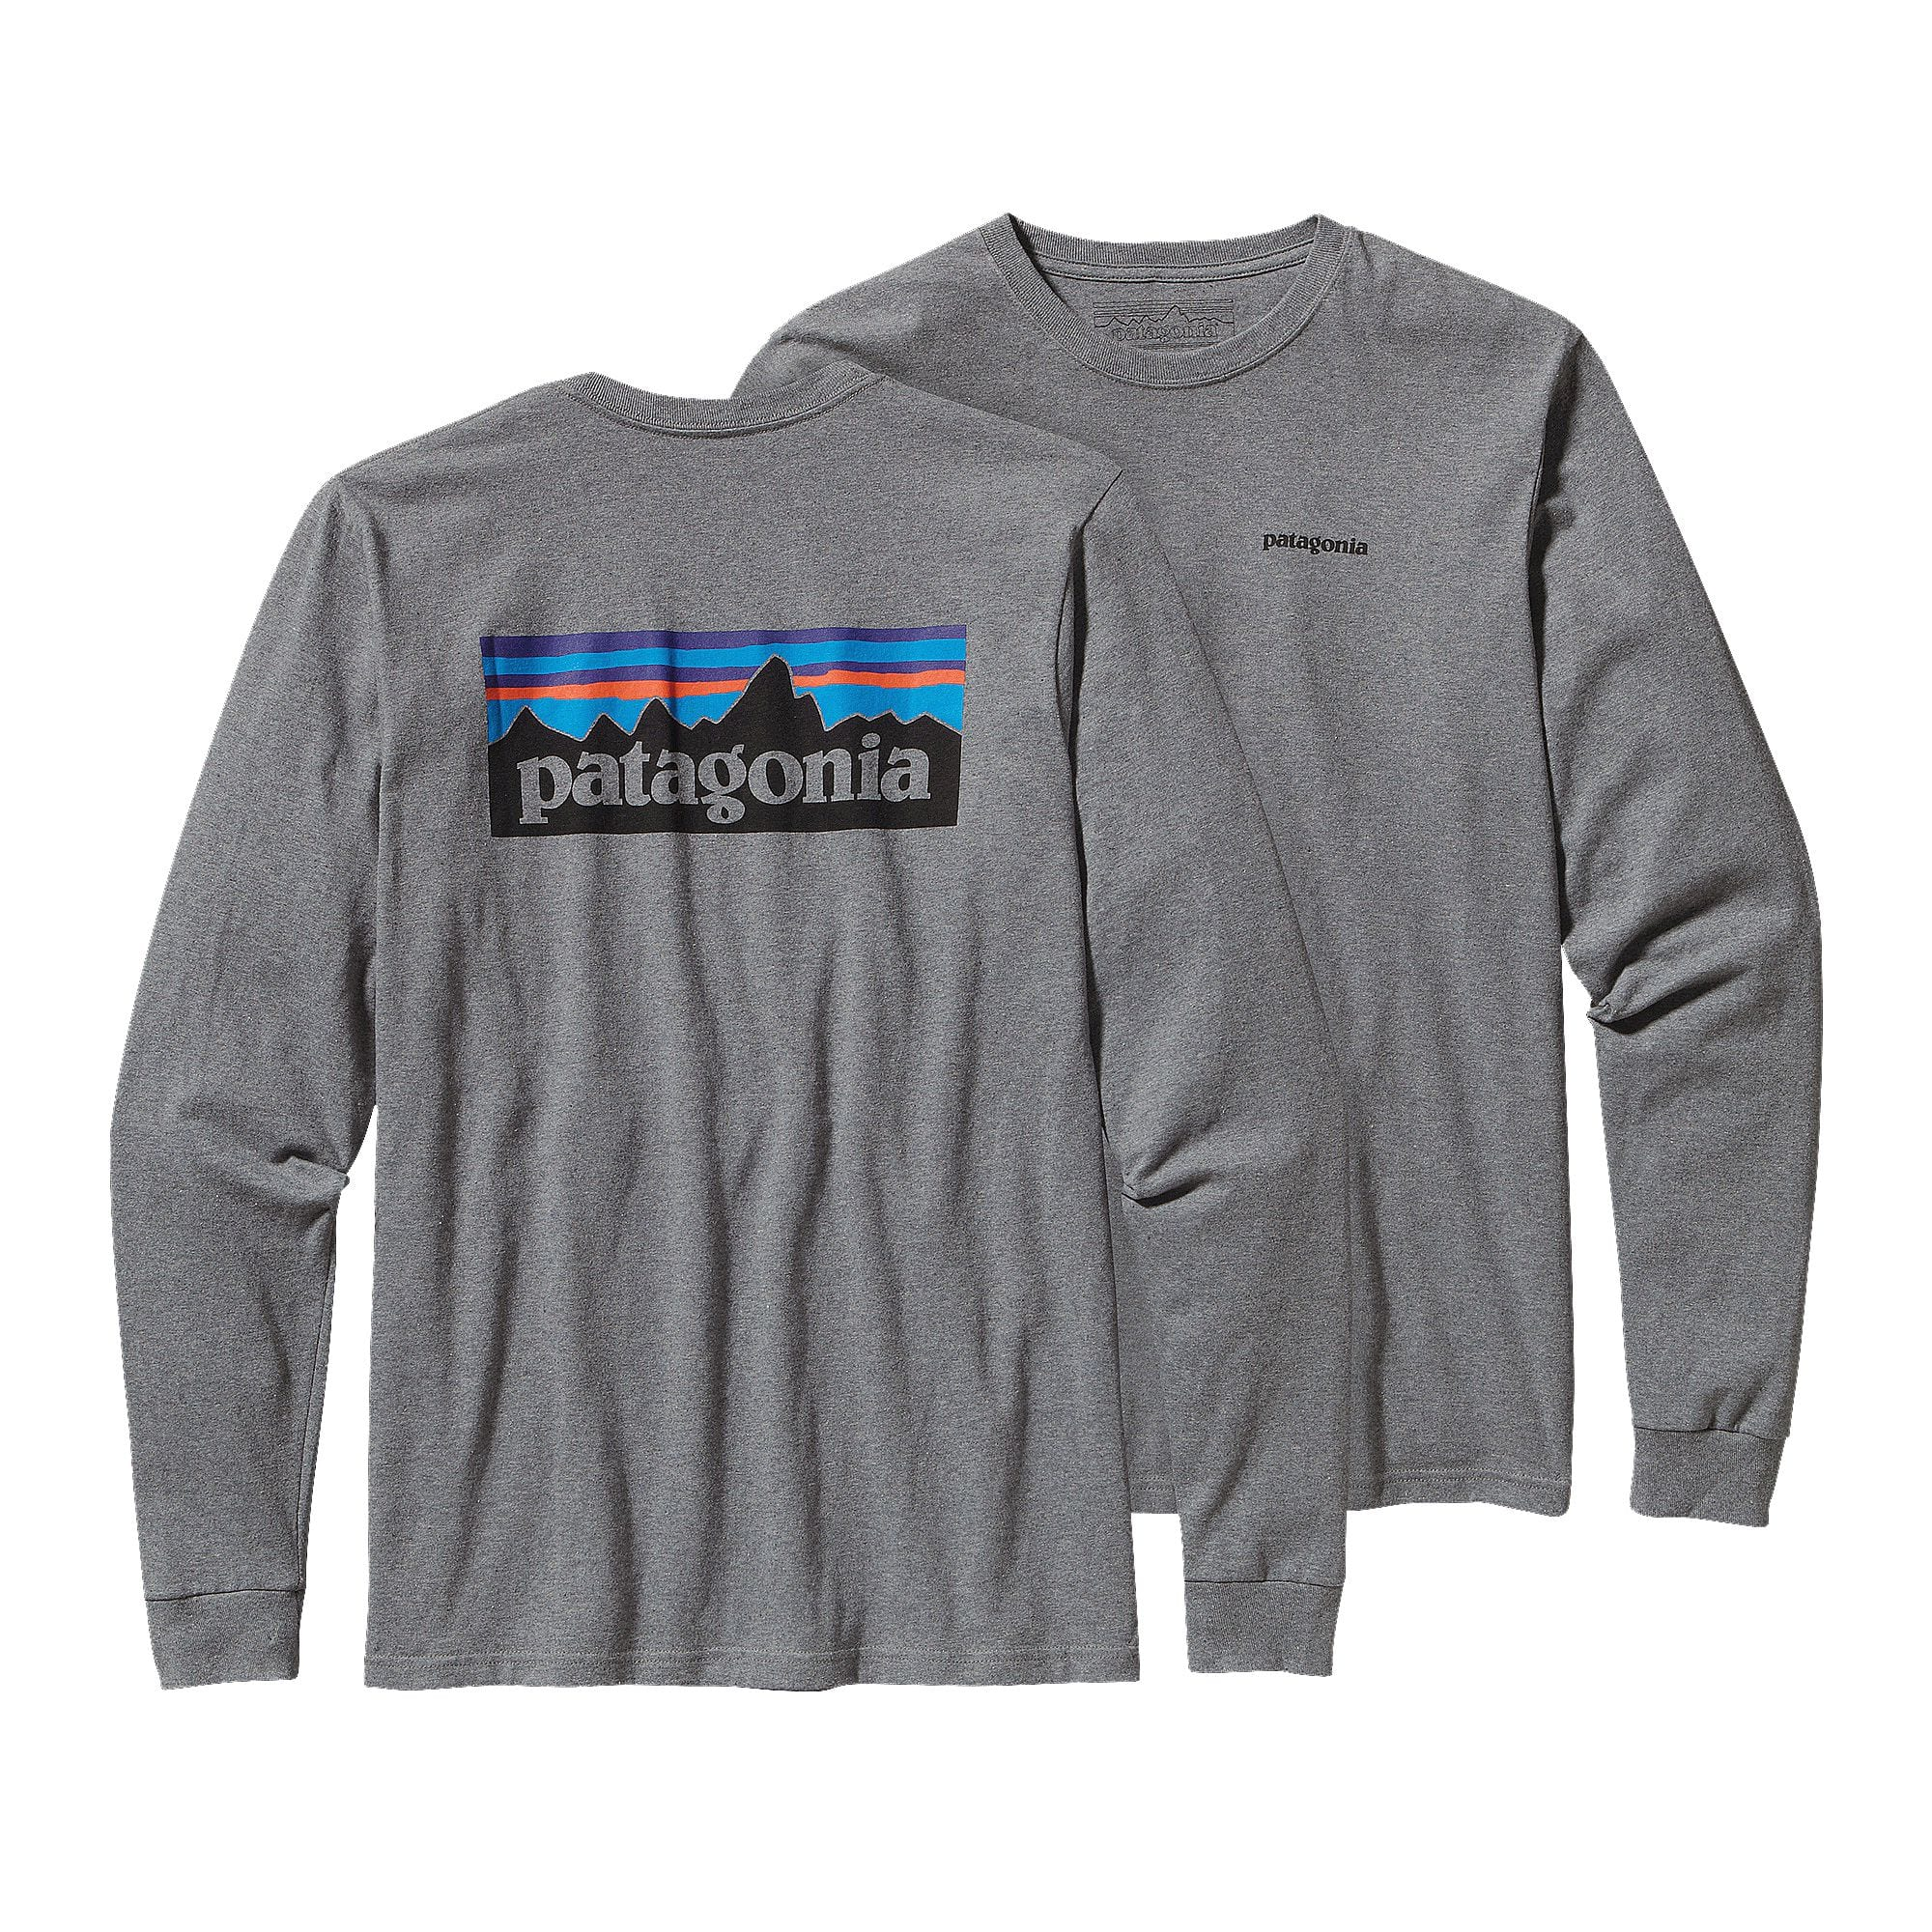 Patagonia mens long sleeve p 6 logo cotton t shirt the for Long sleeve cotton tee shirts